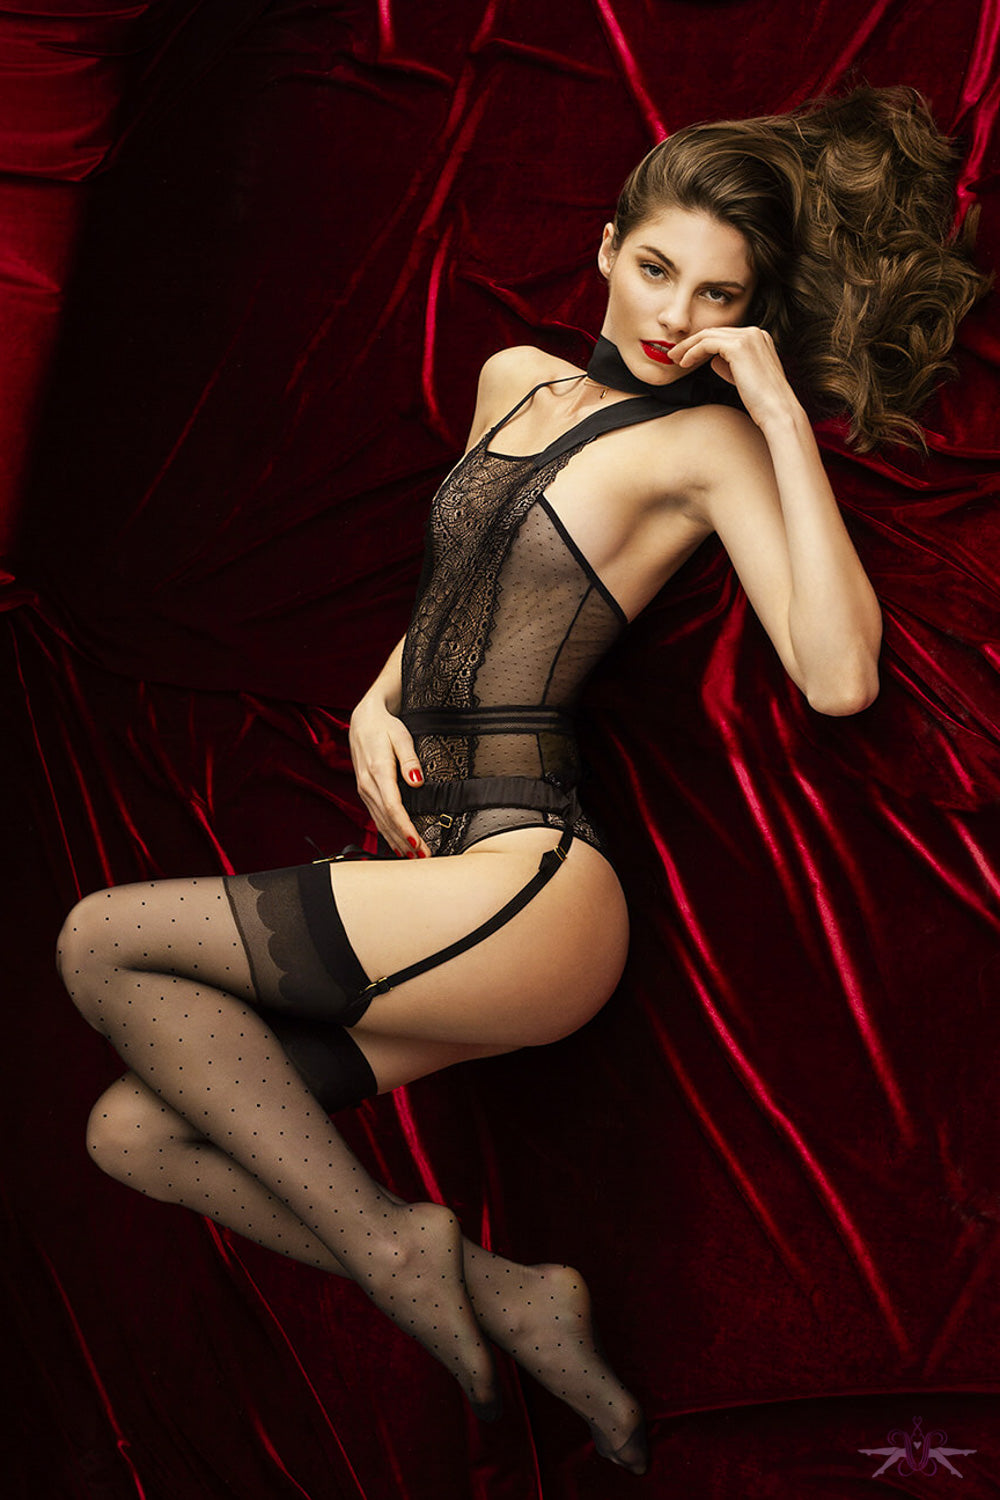 Fiore Marion Stockings - Mayfair Stockings